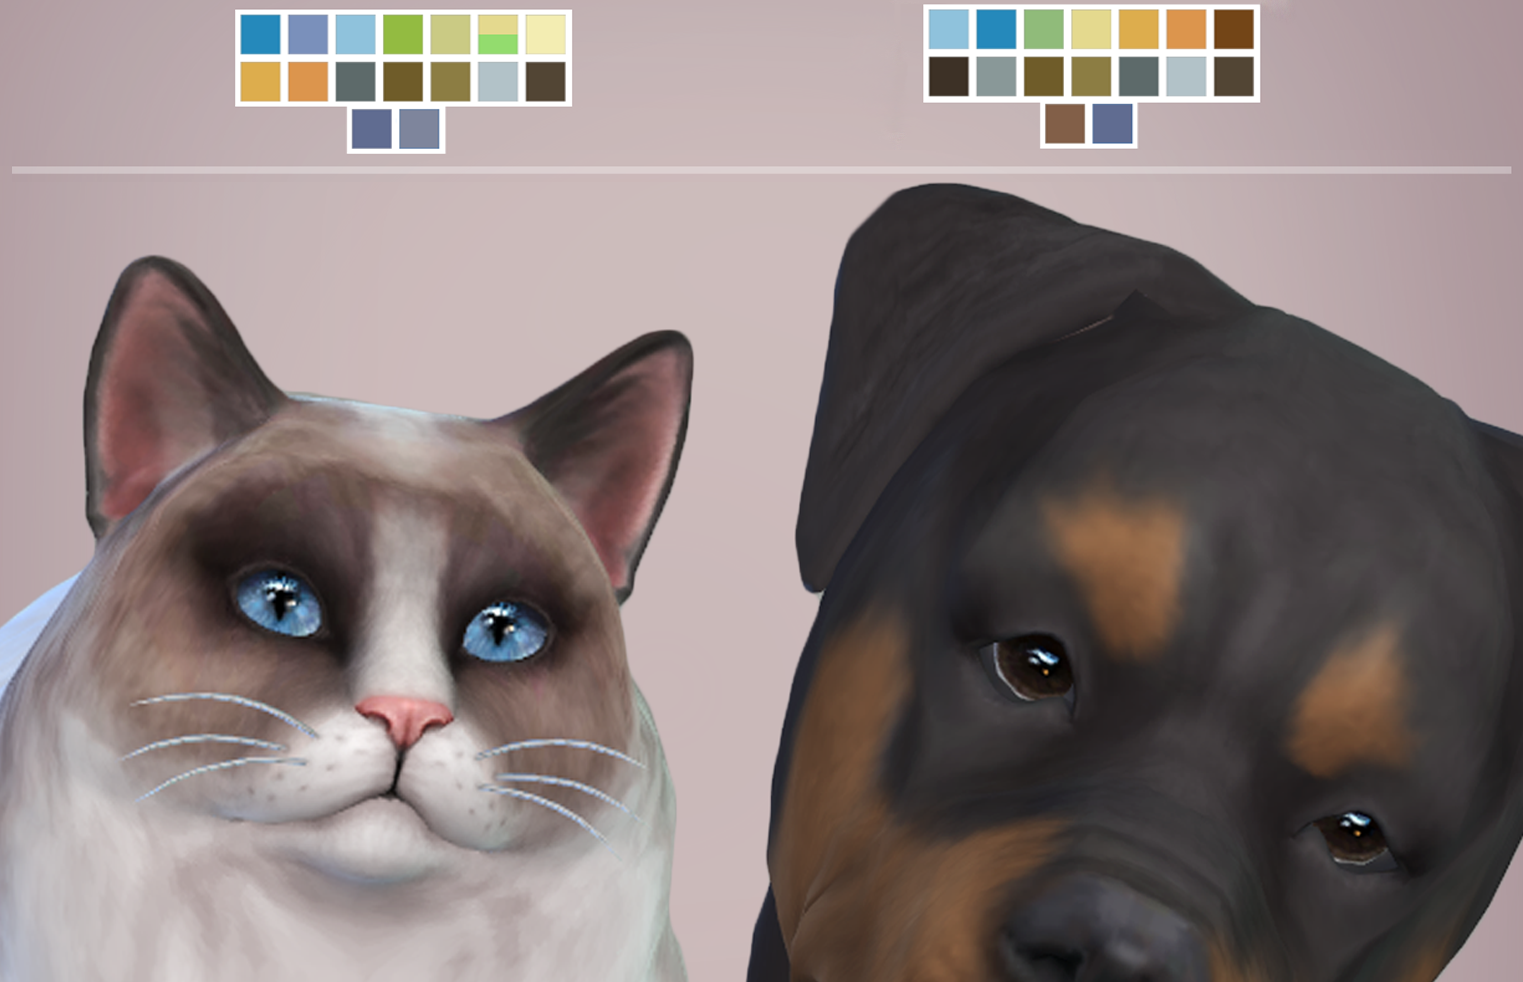 Cats And Dogs Sims  Mod Download